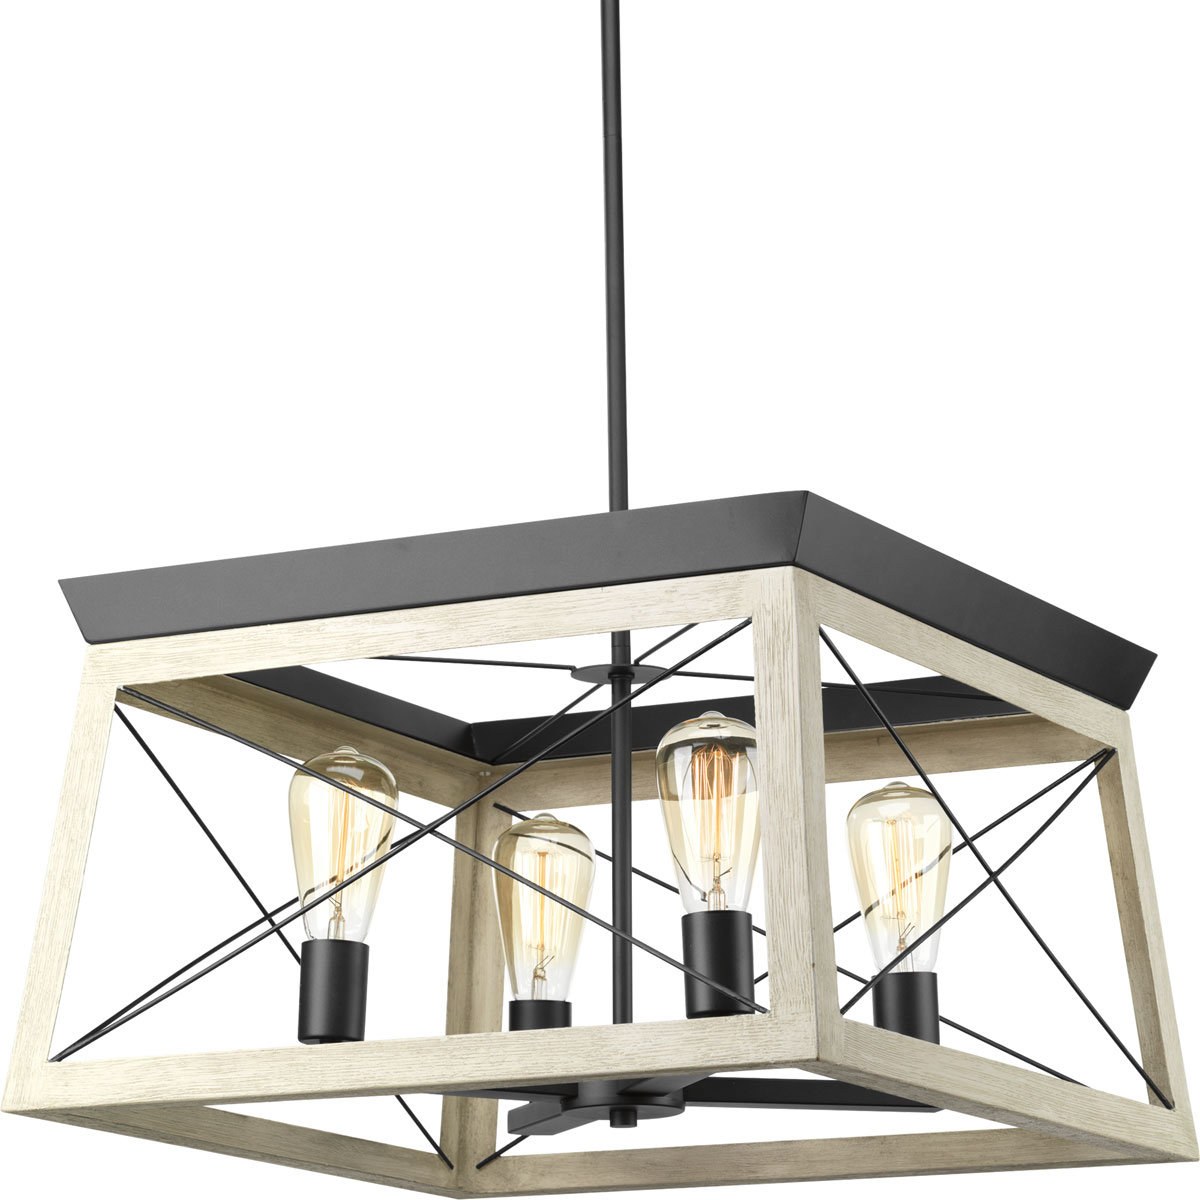 Laurel Foundry Modern Farmhouse Delon 4 Light Square Within Well Known Delon 4 Light Square Chandeliers (View 11 of 25)